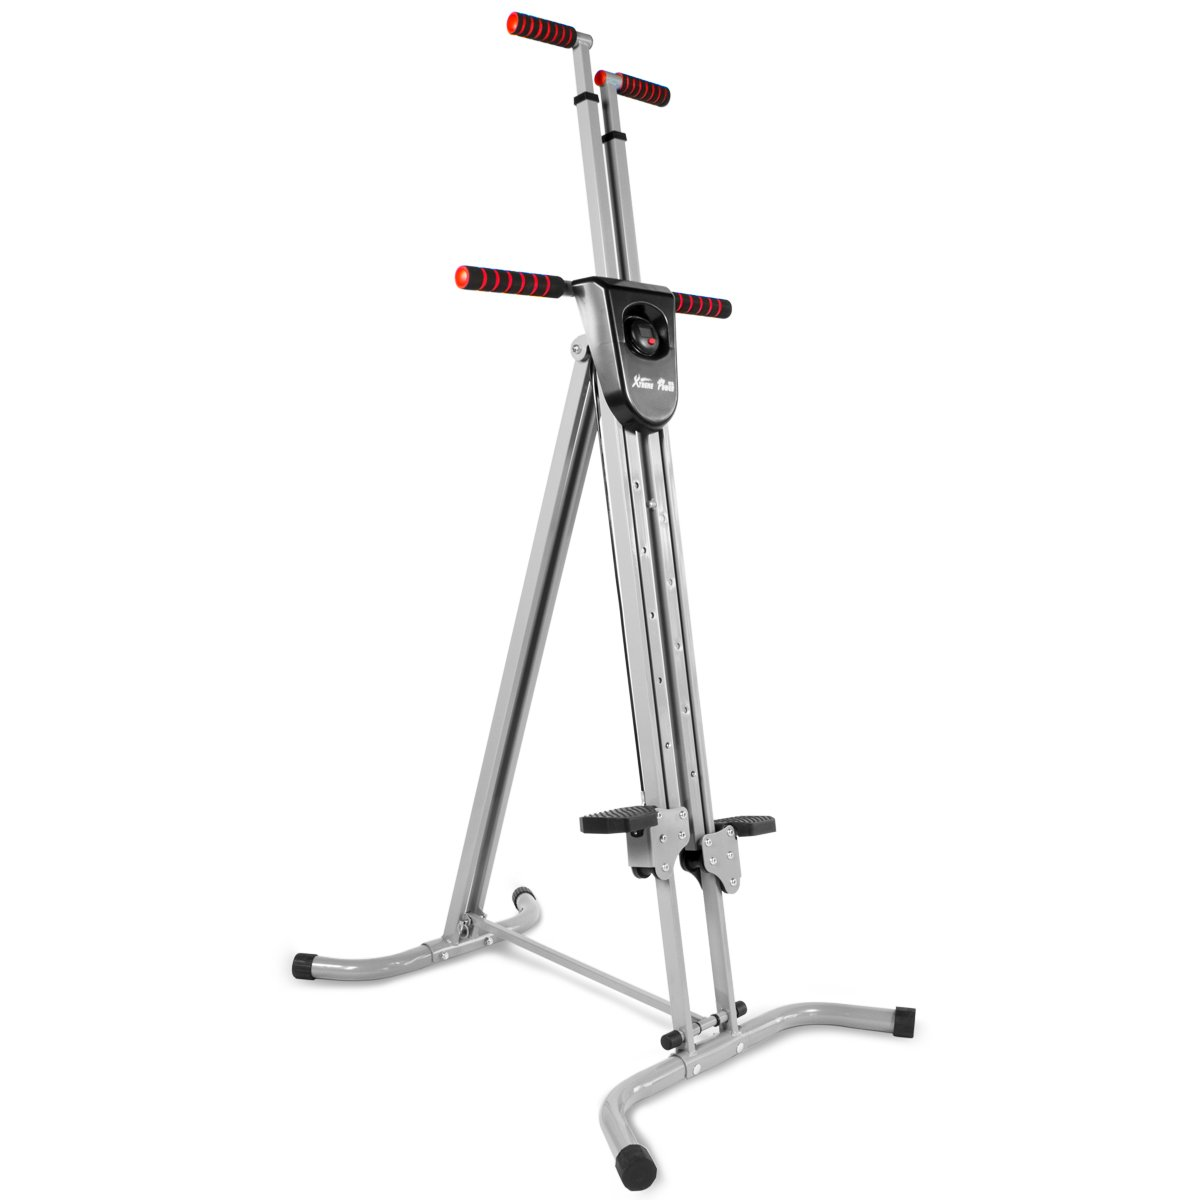 XtremepowerUS Vertical Climber Fitness Cardio Exercise Machine by XtremepowerUS